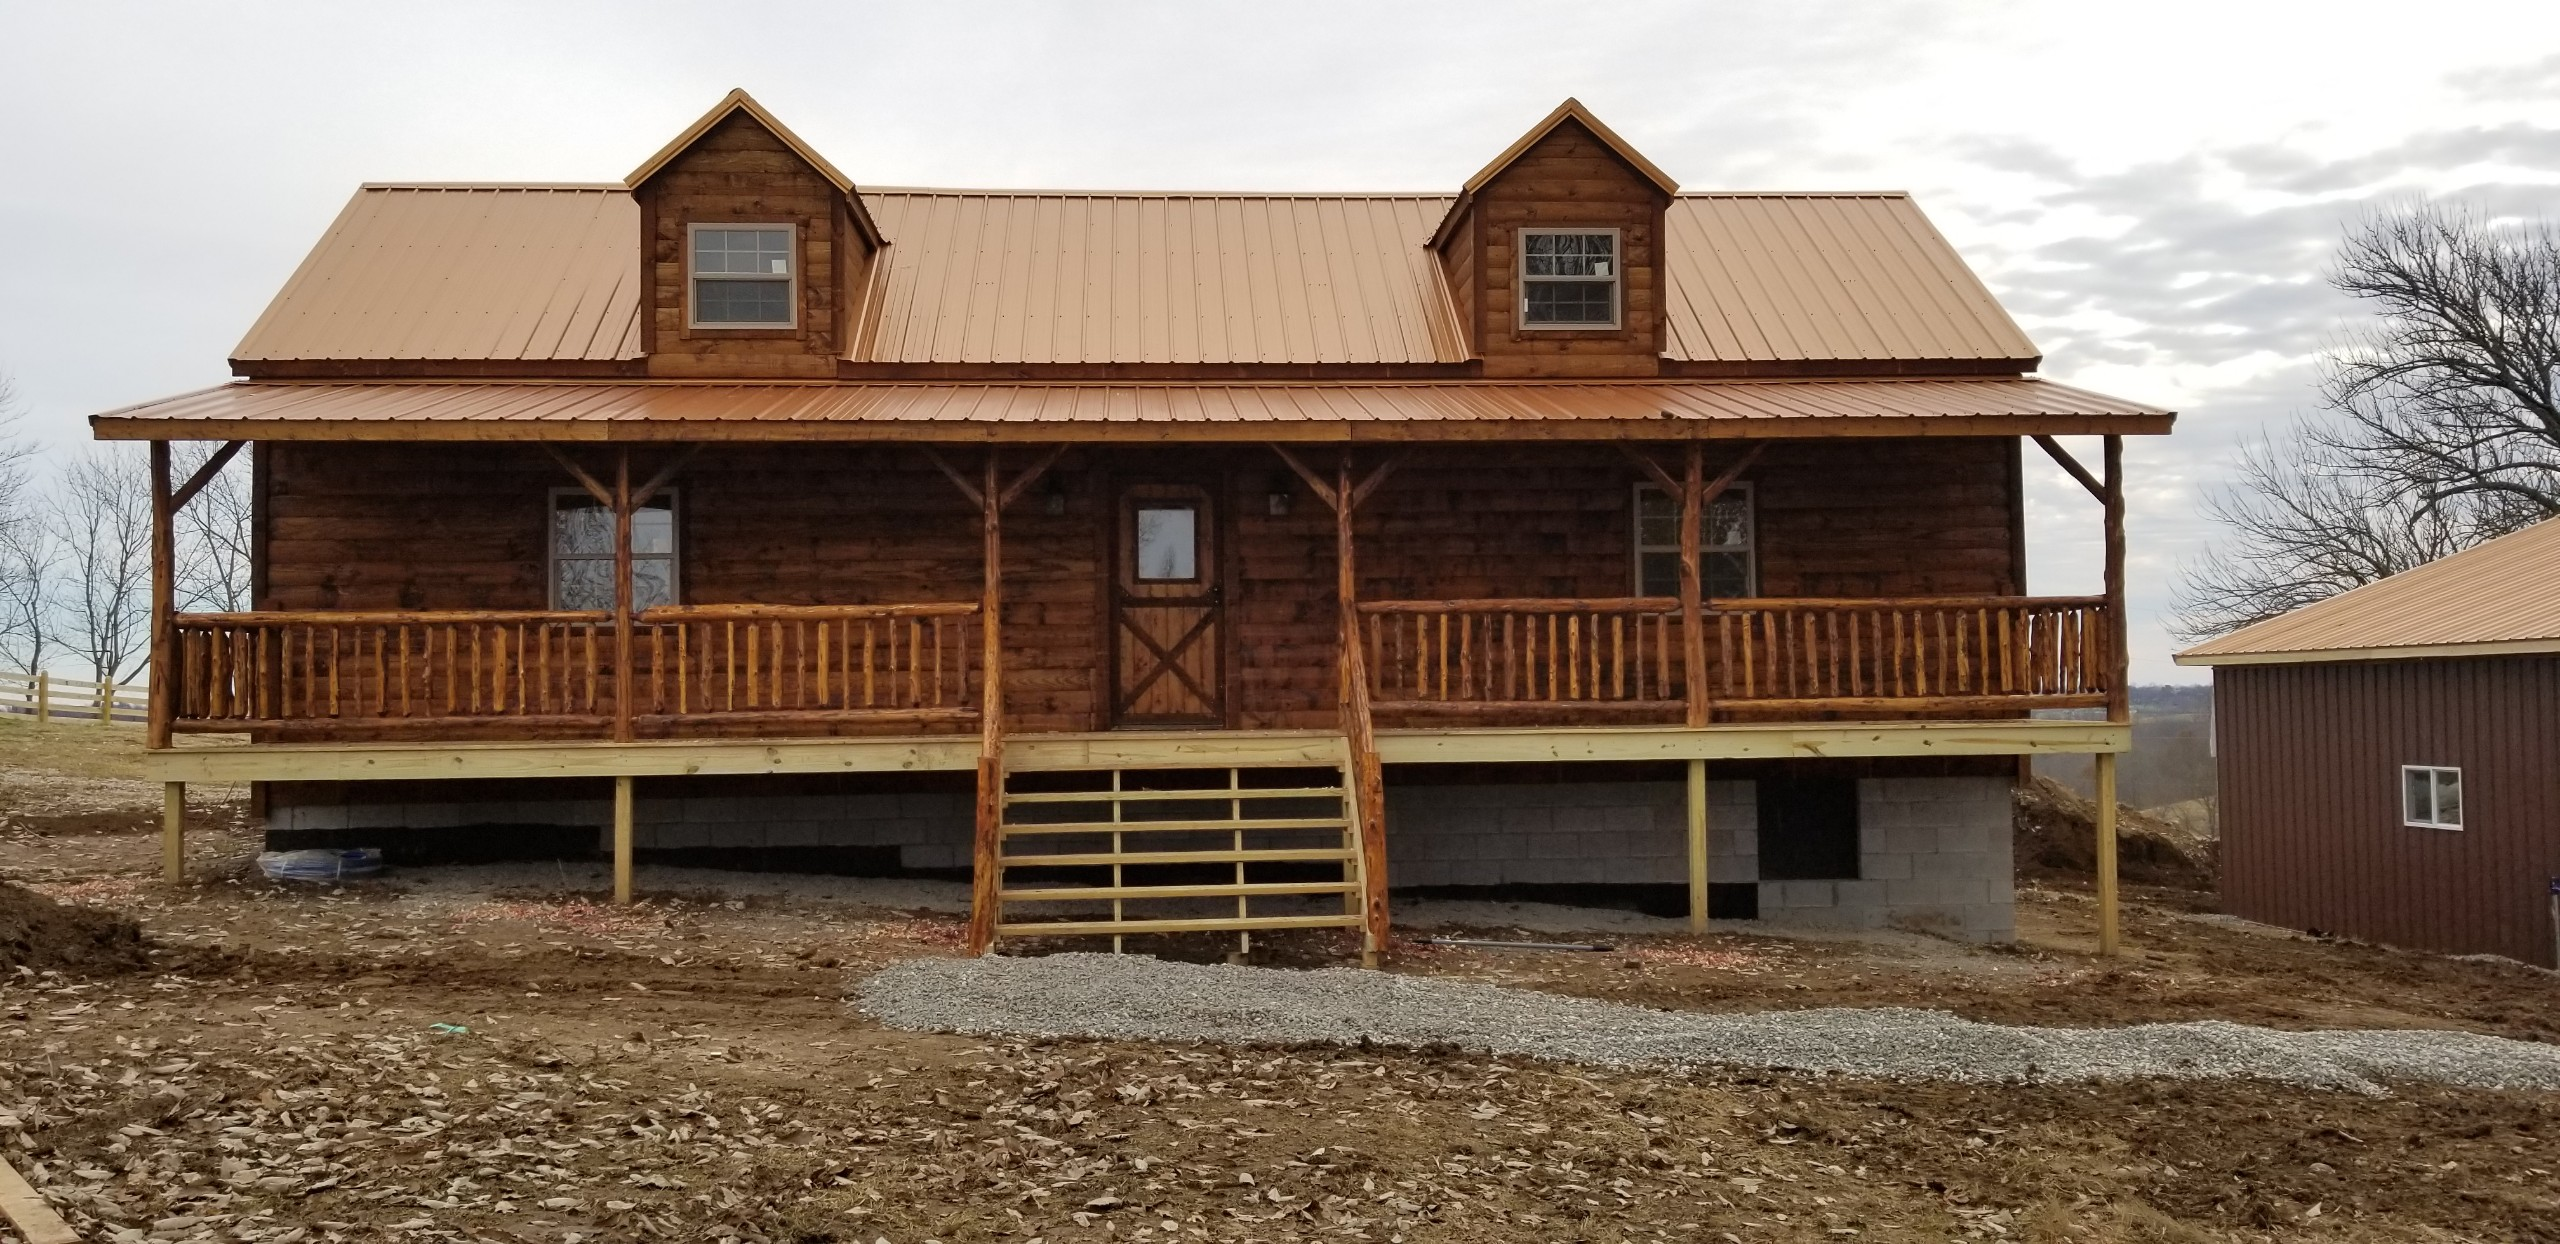 2 Story Frontier Cabin - front view